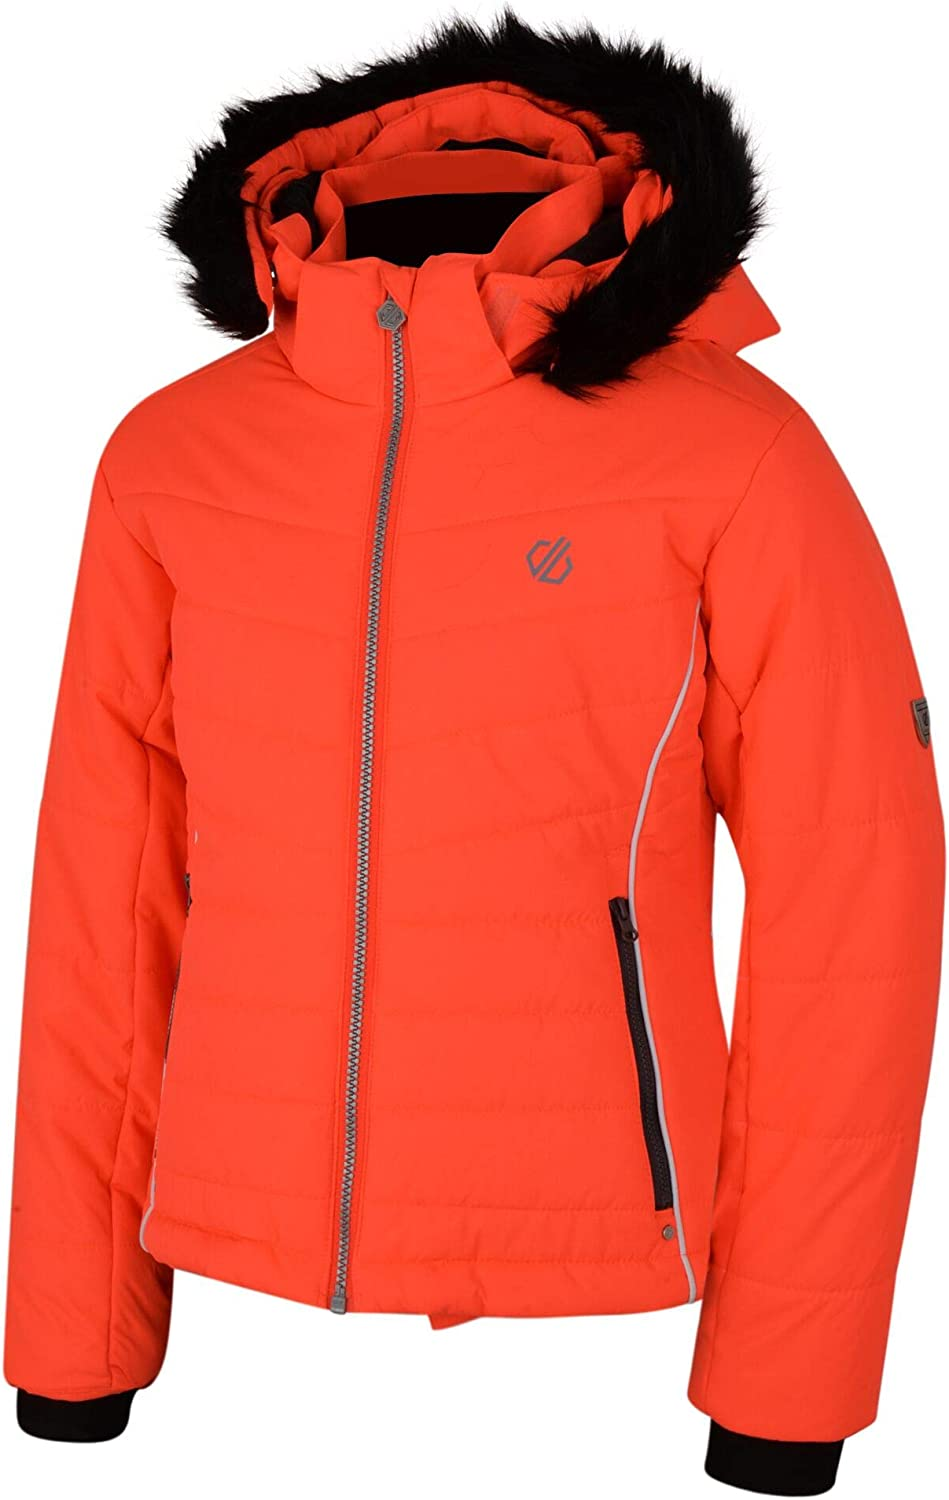 ni/ña 11-12 a/ños Dare 2b Predate Waterproof Breathable High Loft Insulated Quilted Silhouette Ski Snowboard Jacket with Detachable Faux Fur Hood and Snowskirt Chaqueta Coral